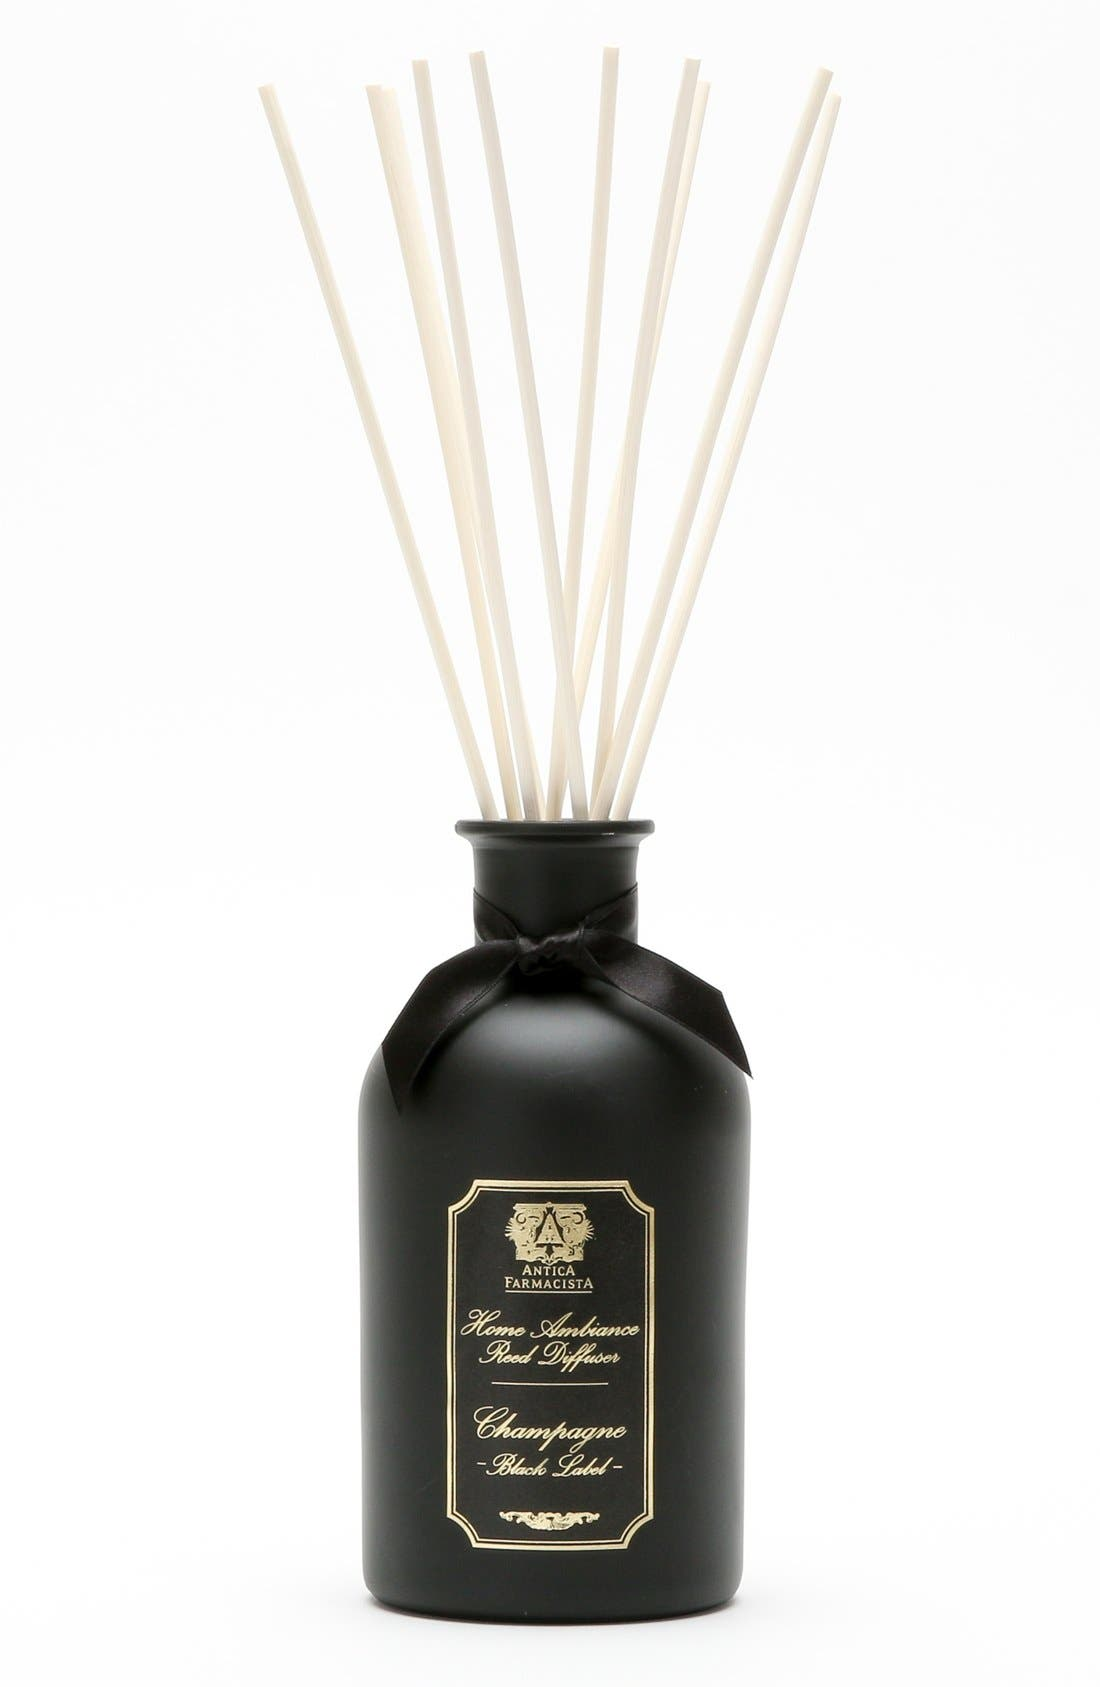 Antica Farmacista Black Label - Champagne Home Ambiance Perfume (Limited Edition)